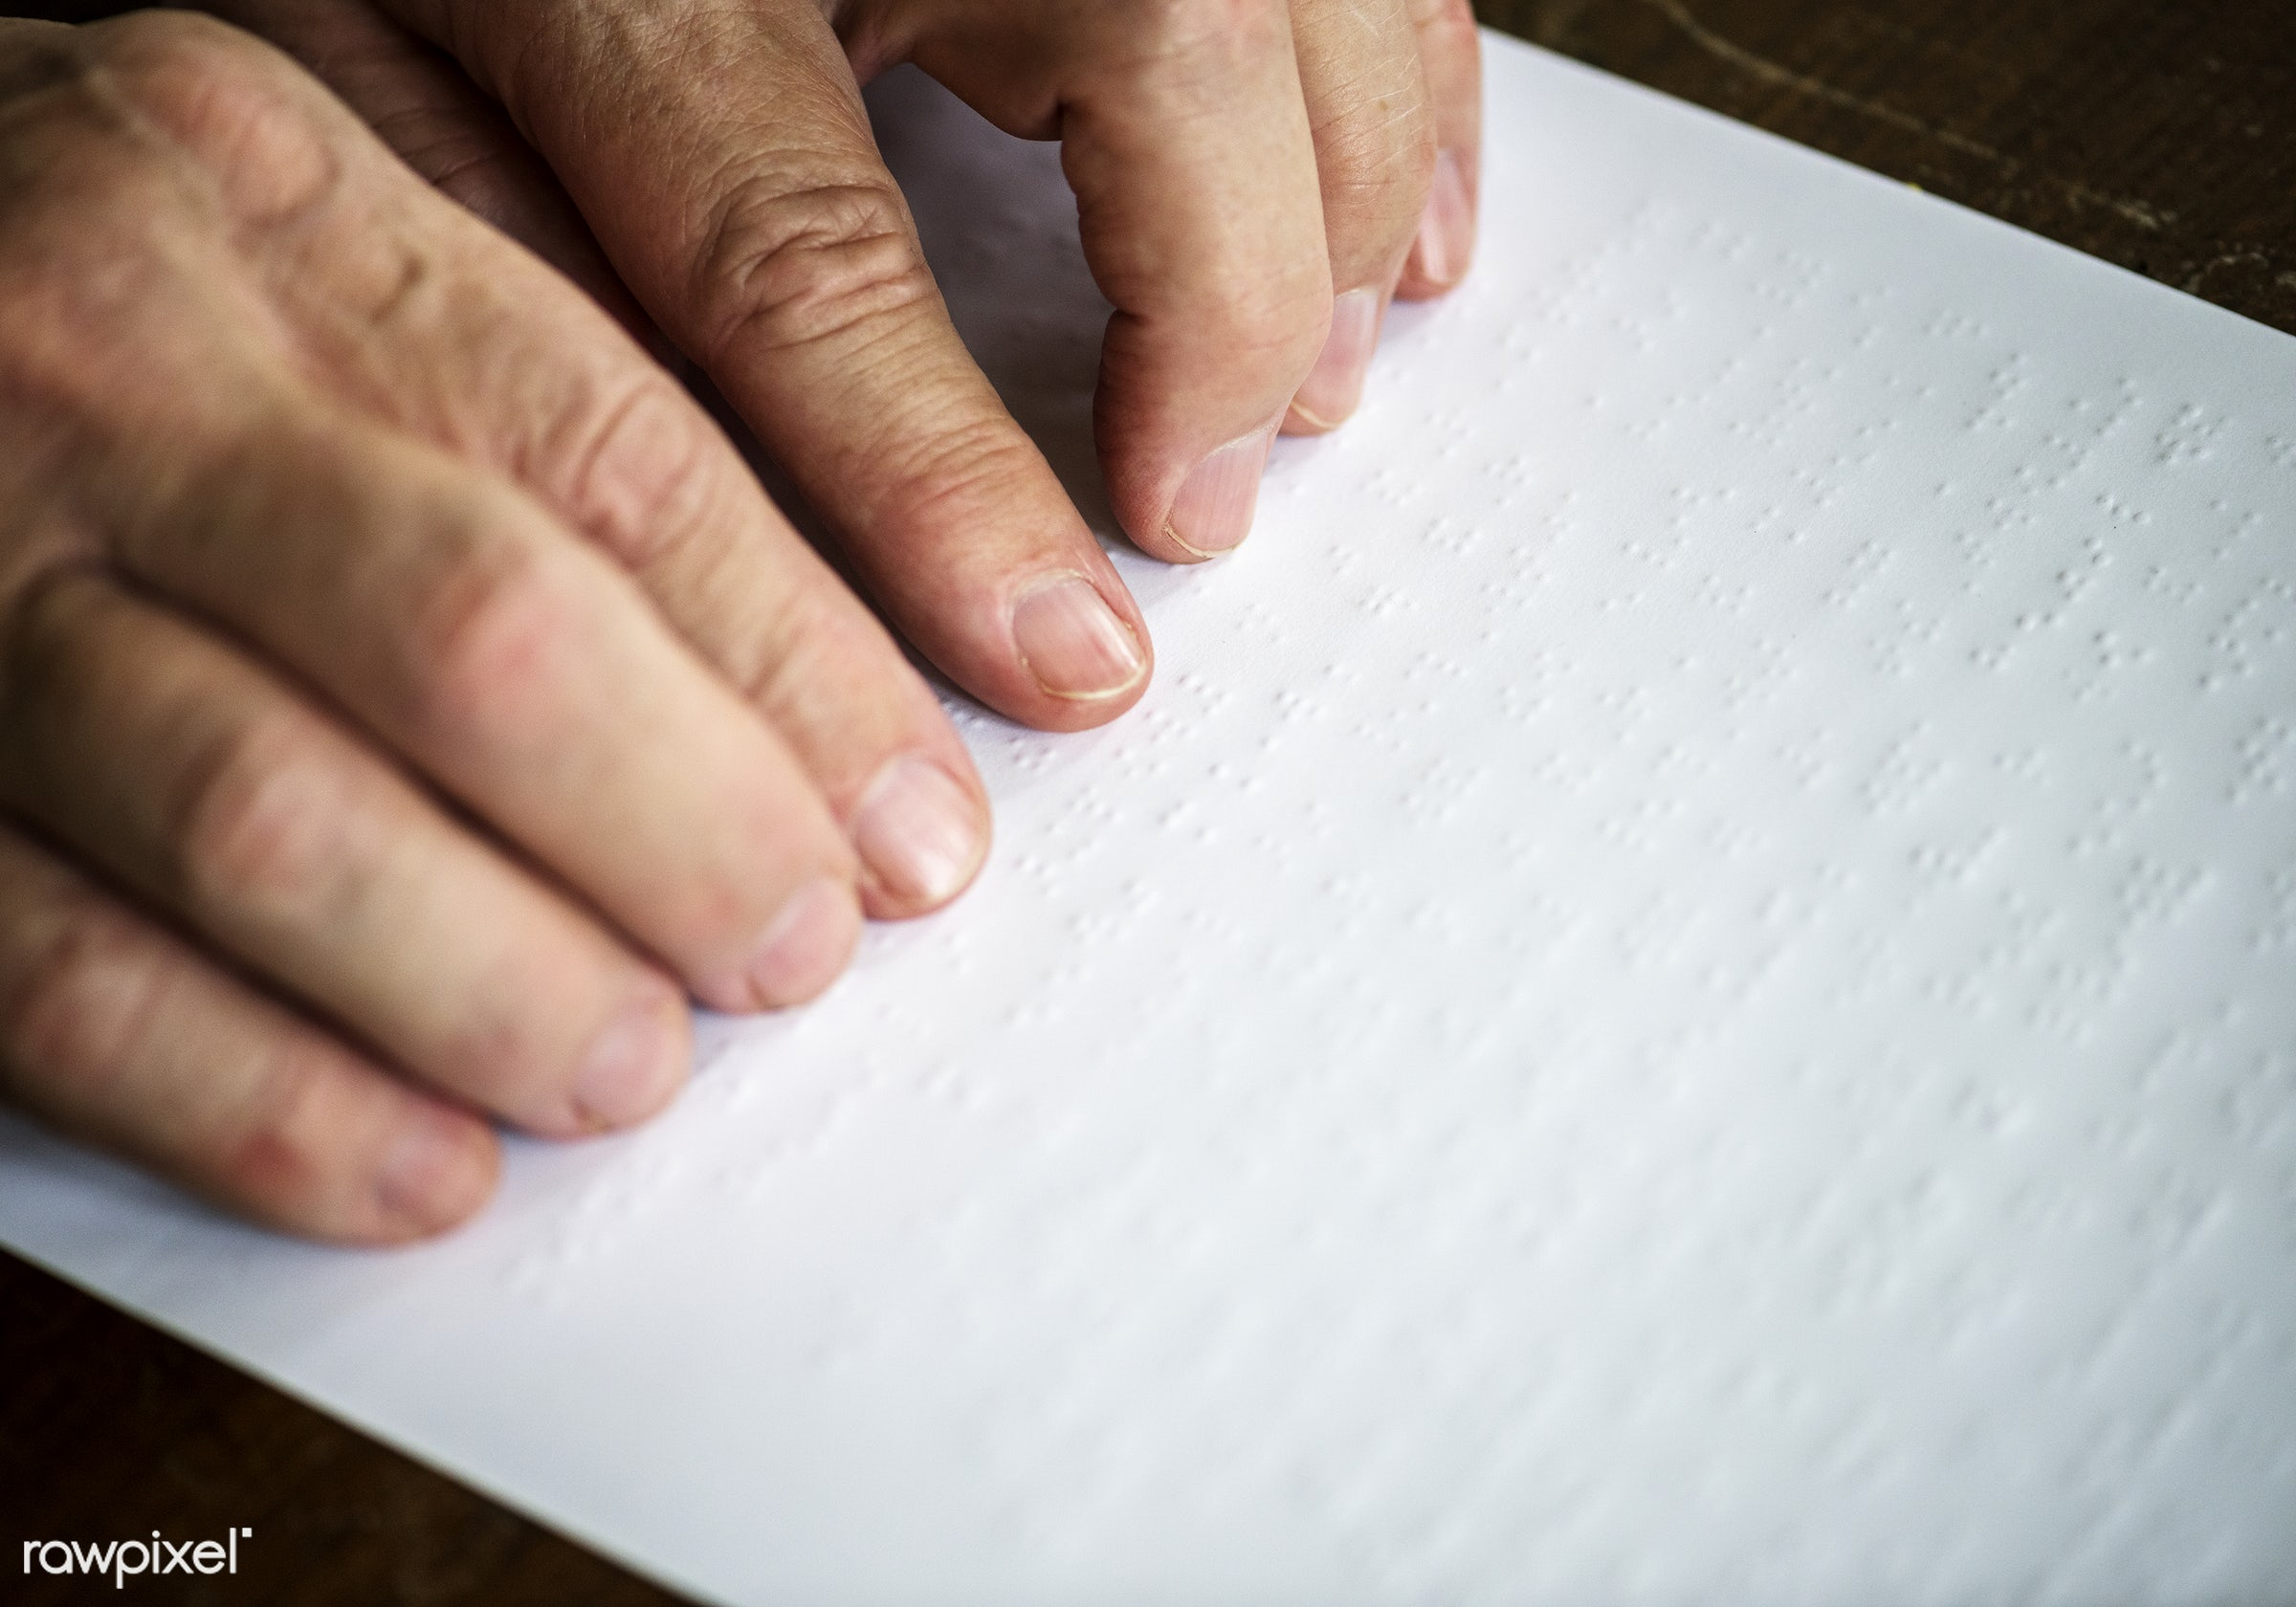 Reading braille letters - braille, paper, hands, read, disability, closeup, handicapped, letter, hobby, leisure, touch, book...